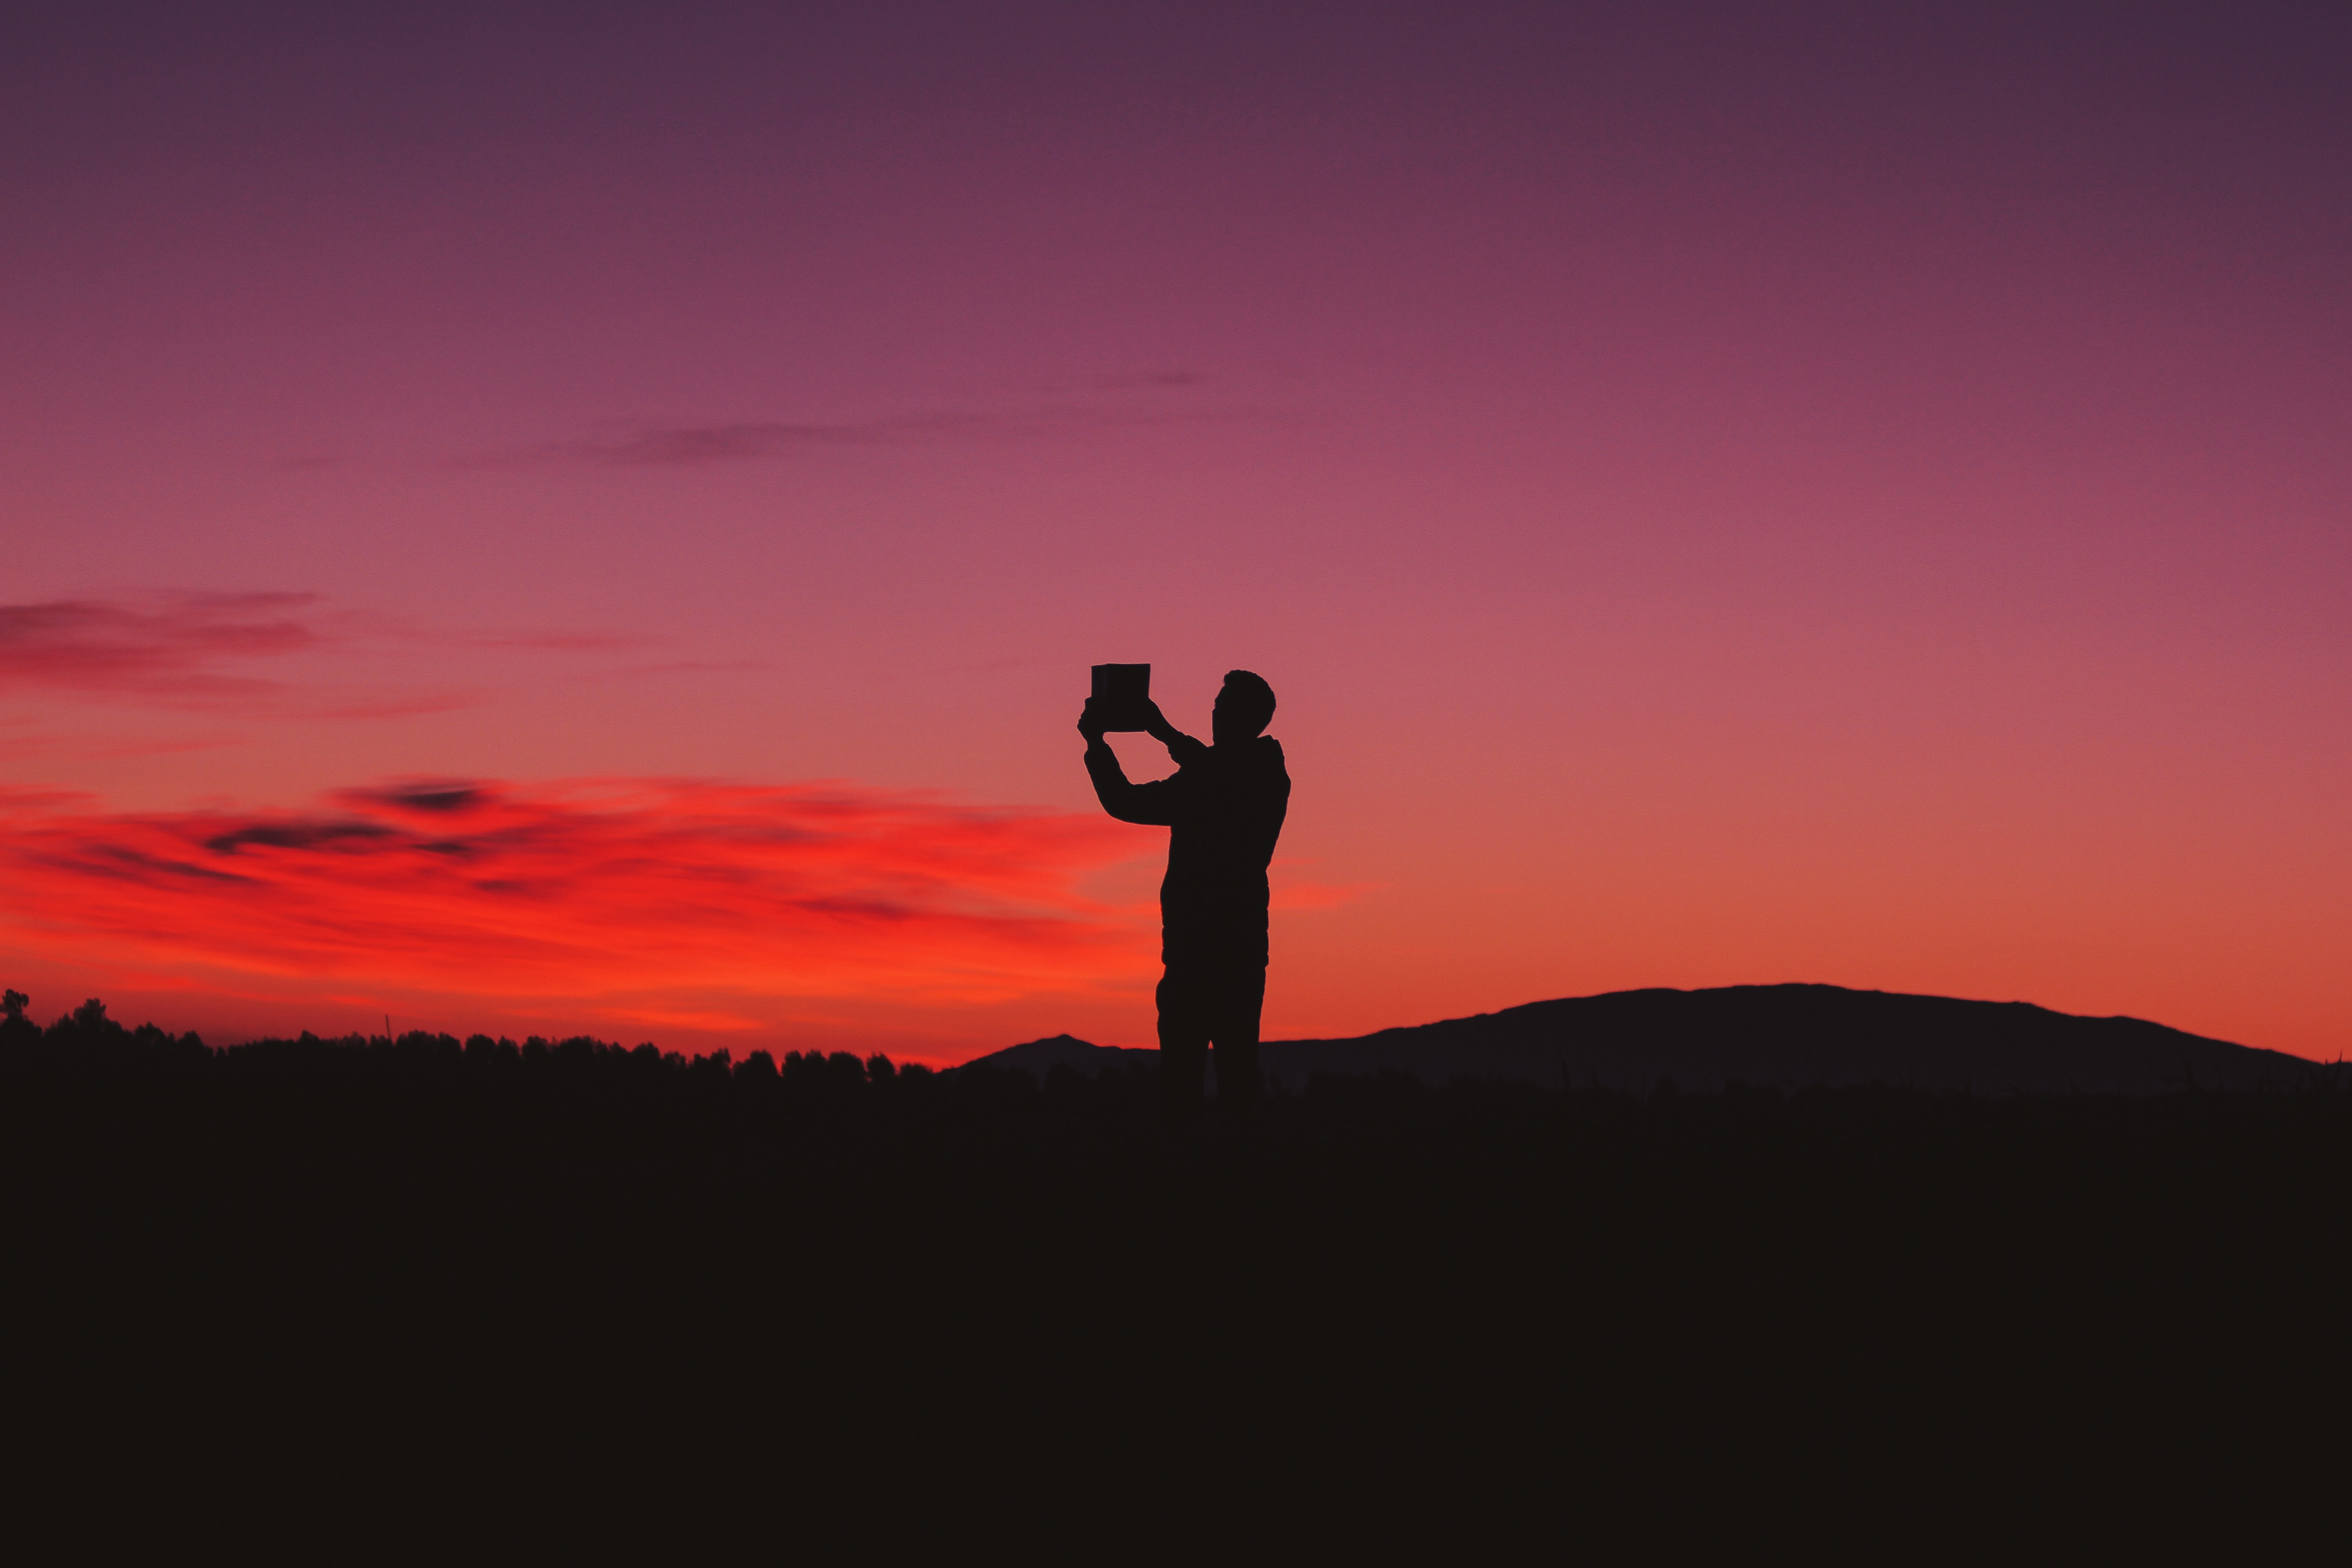 silhouette photo of man on hill